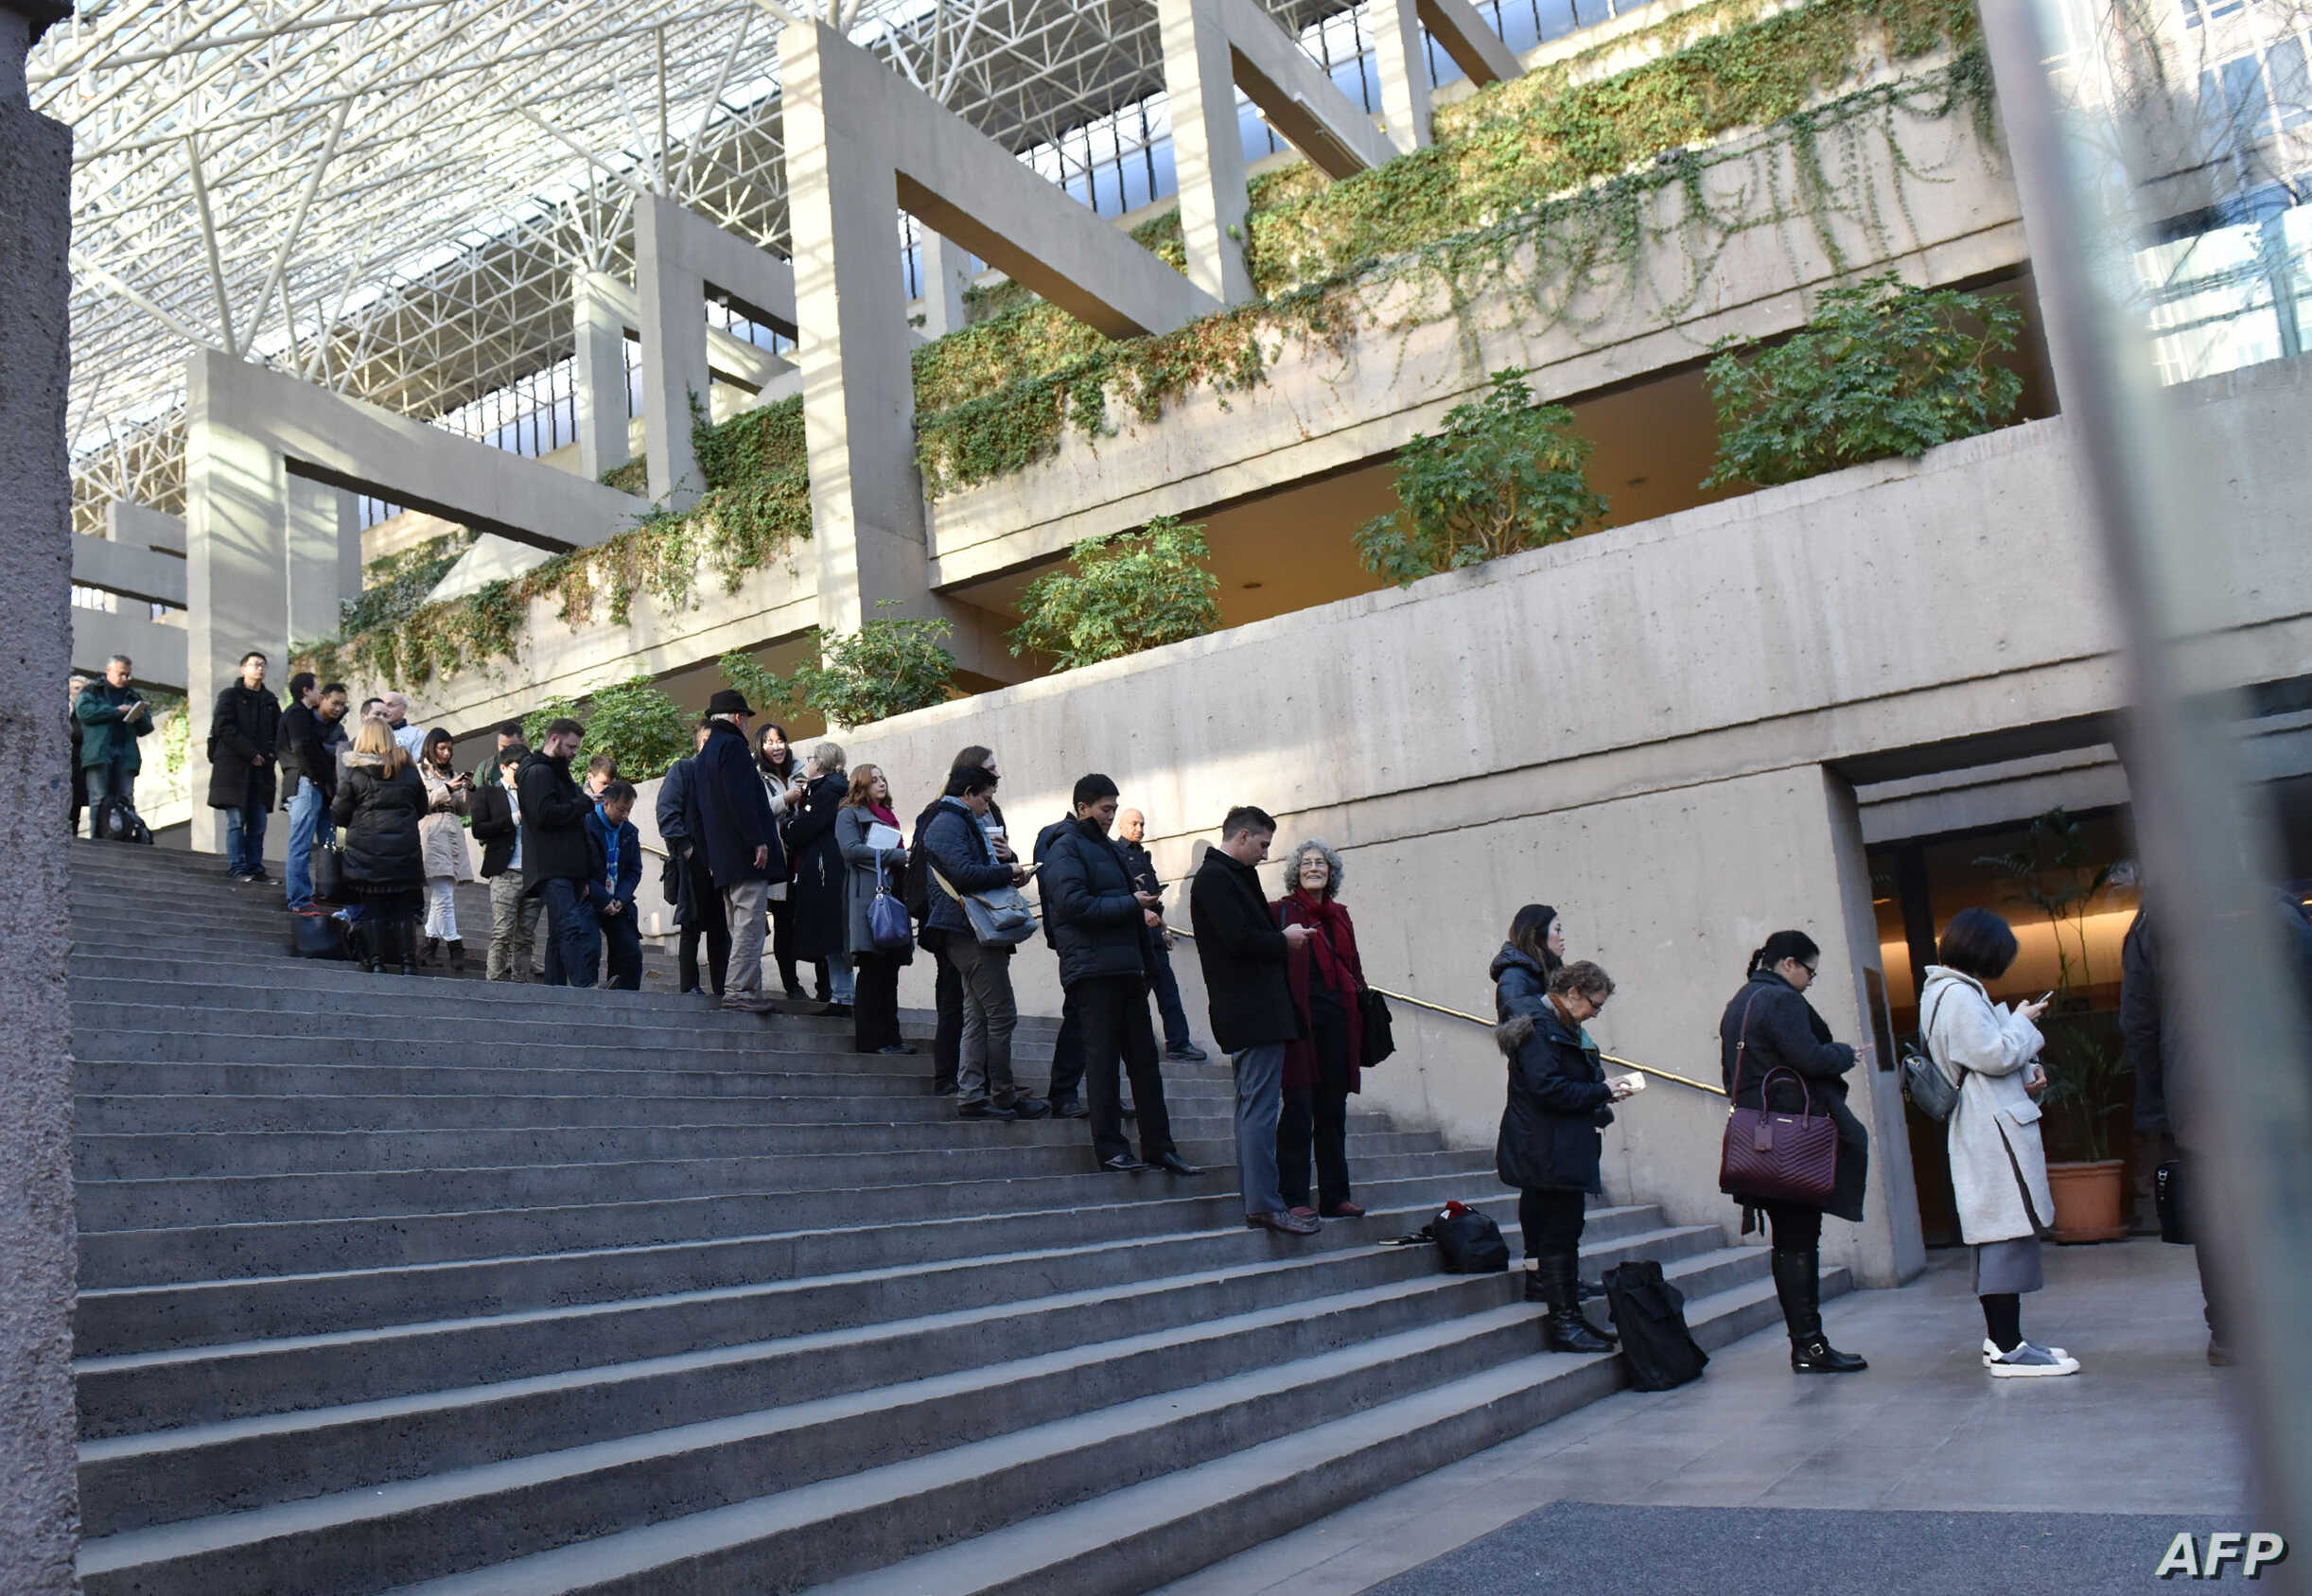 Media and members of the public line up outside the British Columbia Supreme Court to attend the trial of Meng Wanzhou, the chief financial officer of Huawei Technologies on Dec. 7, 2018 in Vancouver BC.